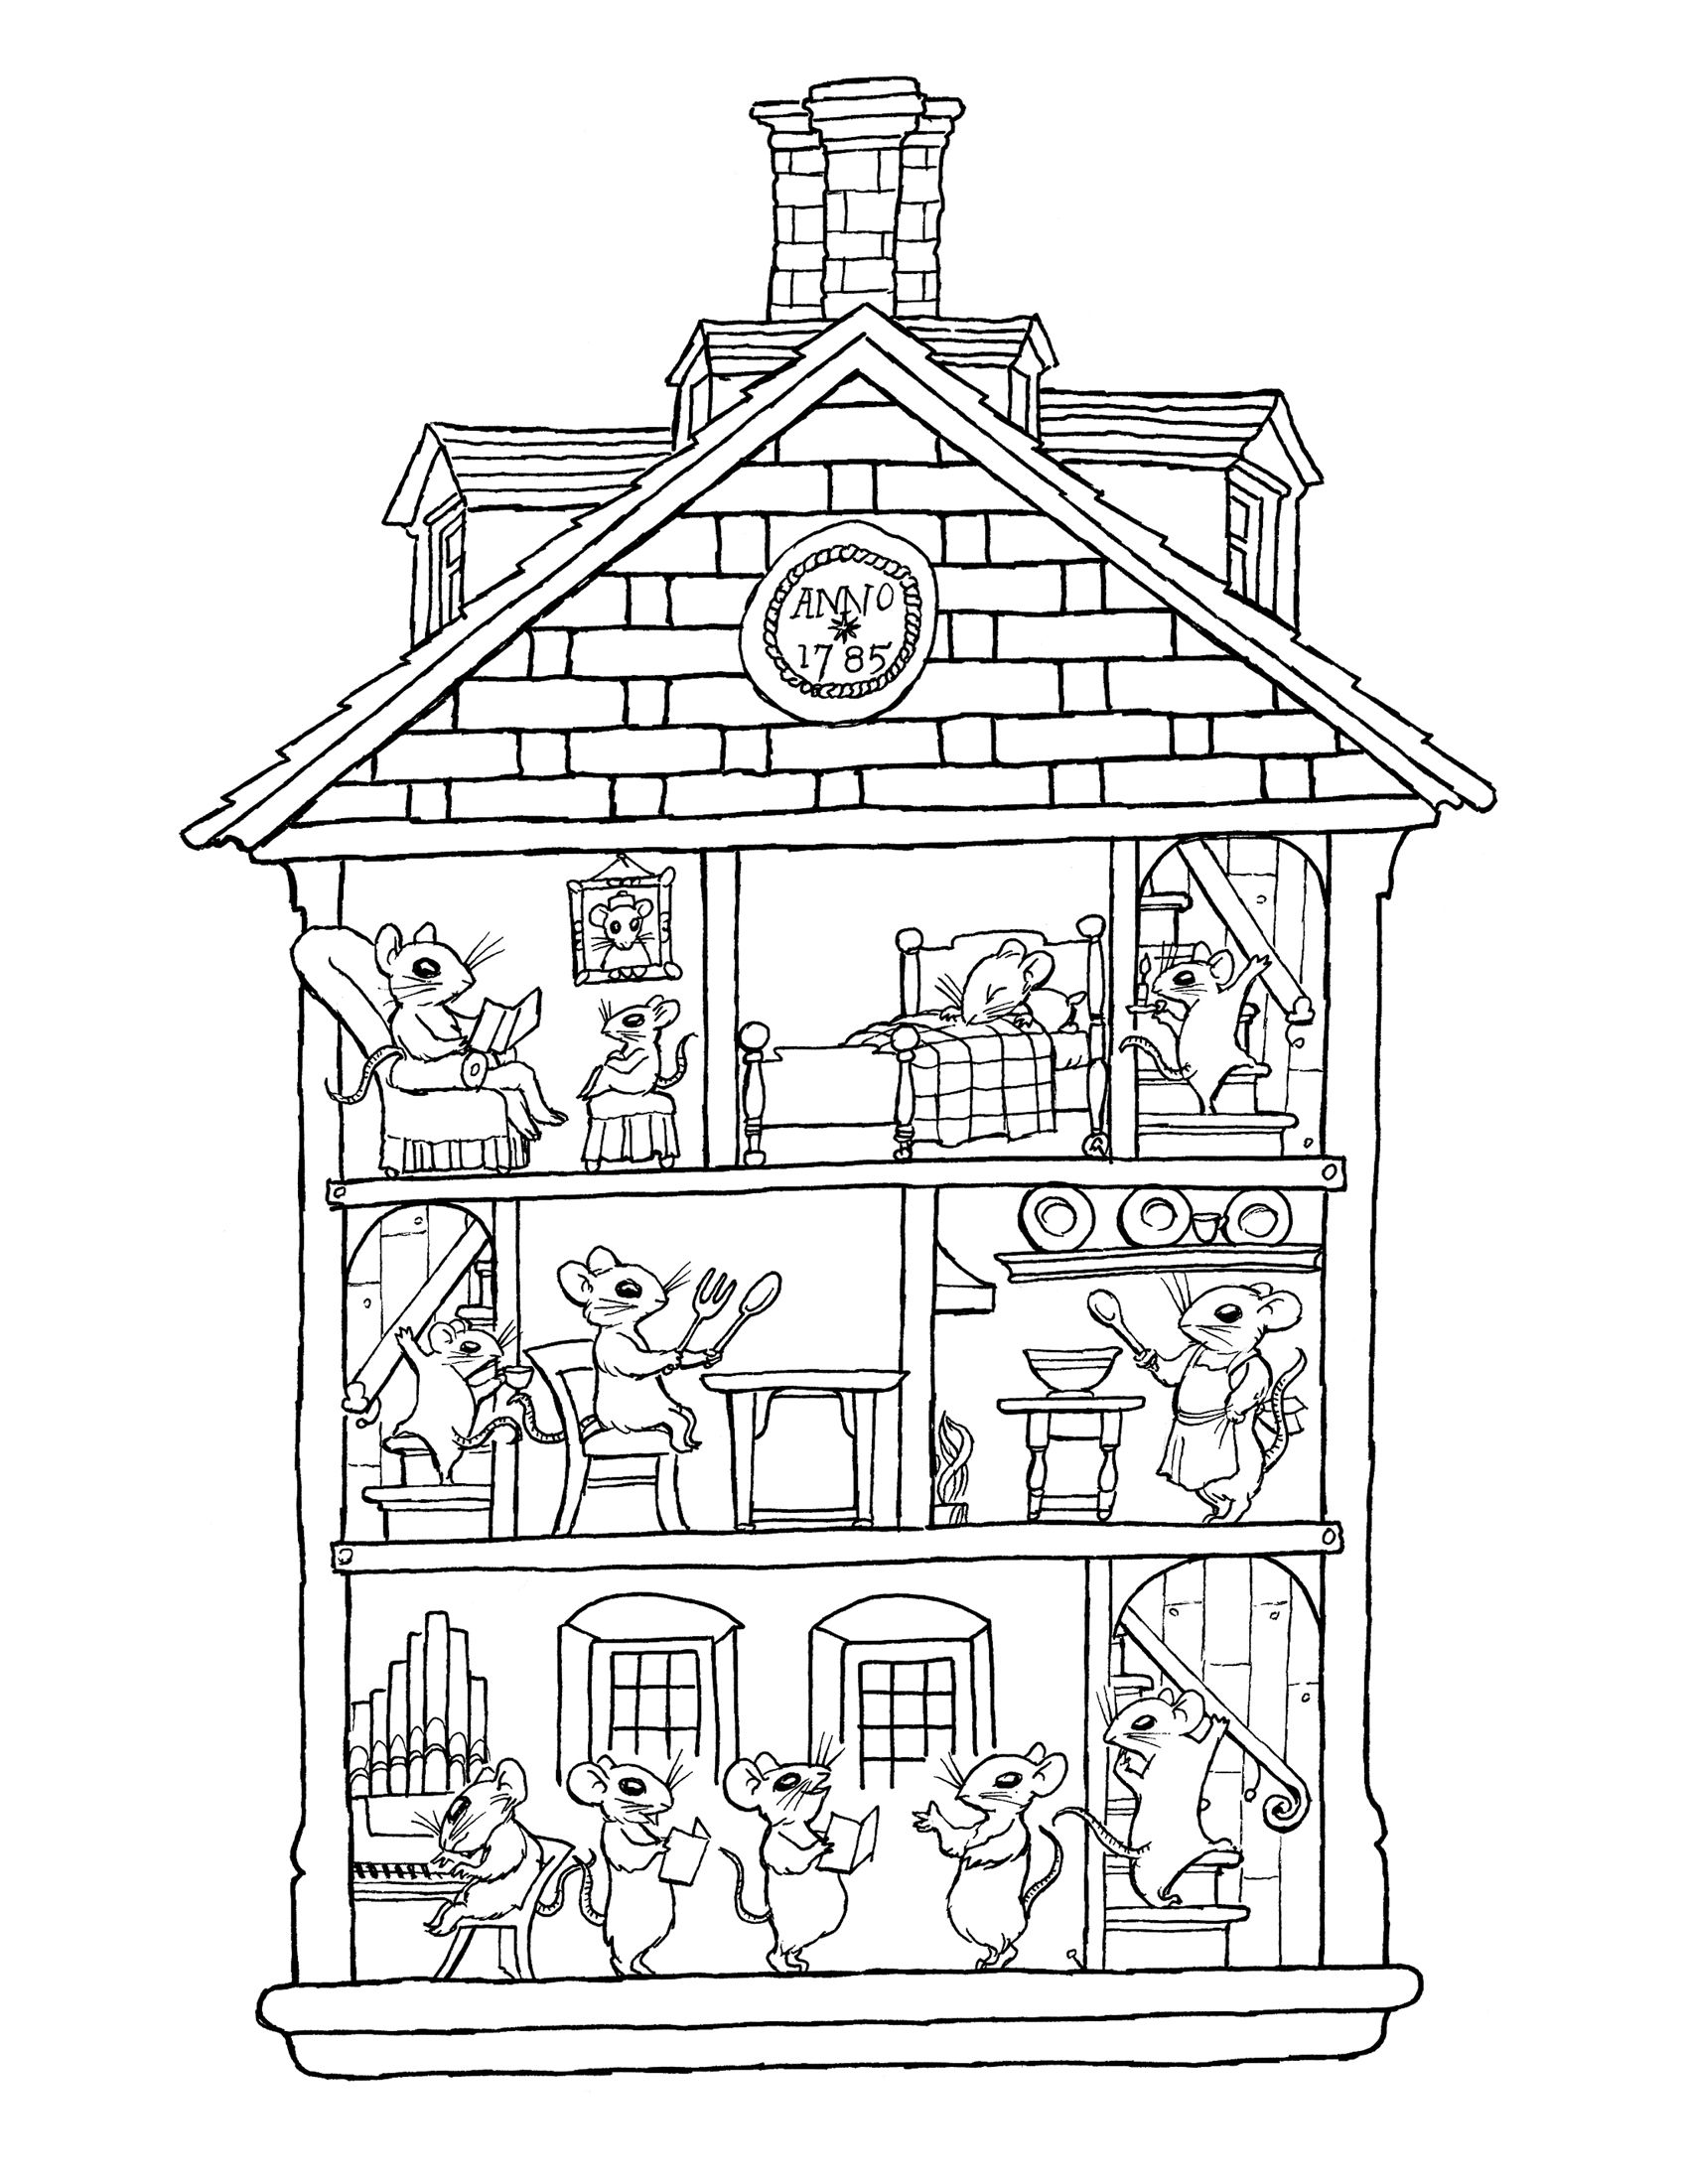 Coloring pages home